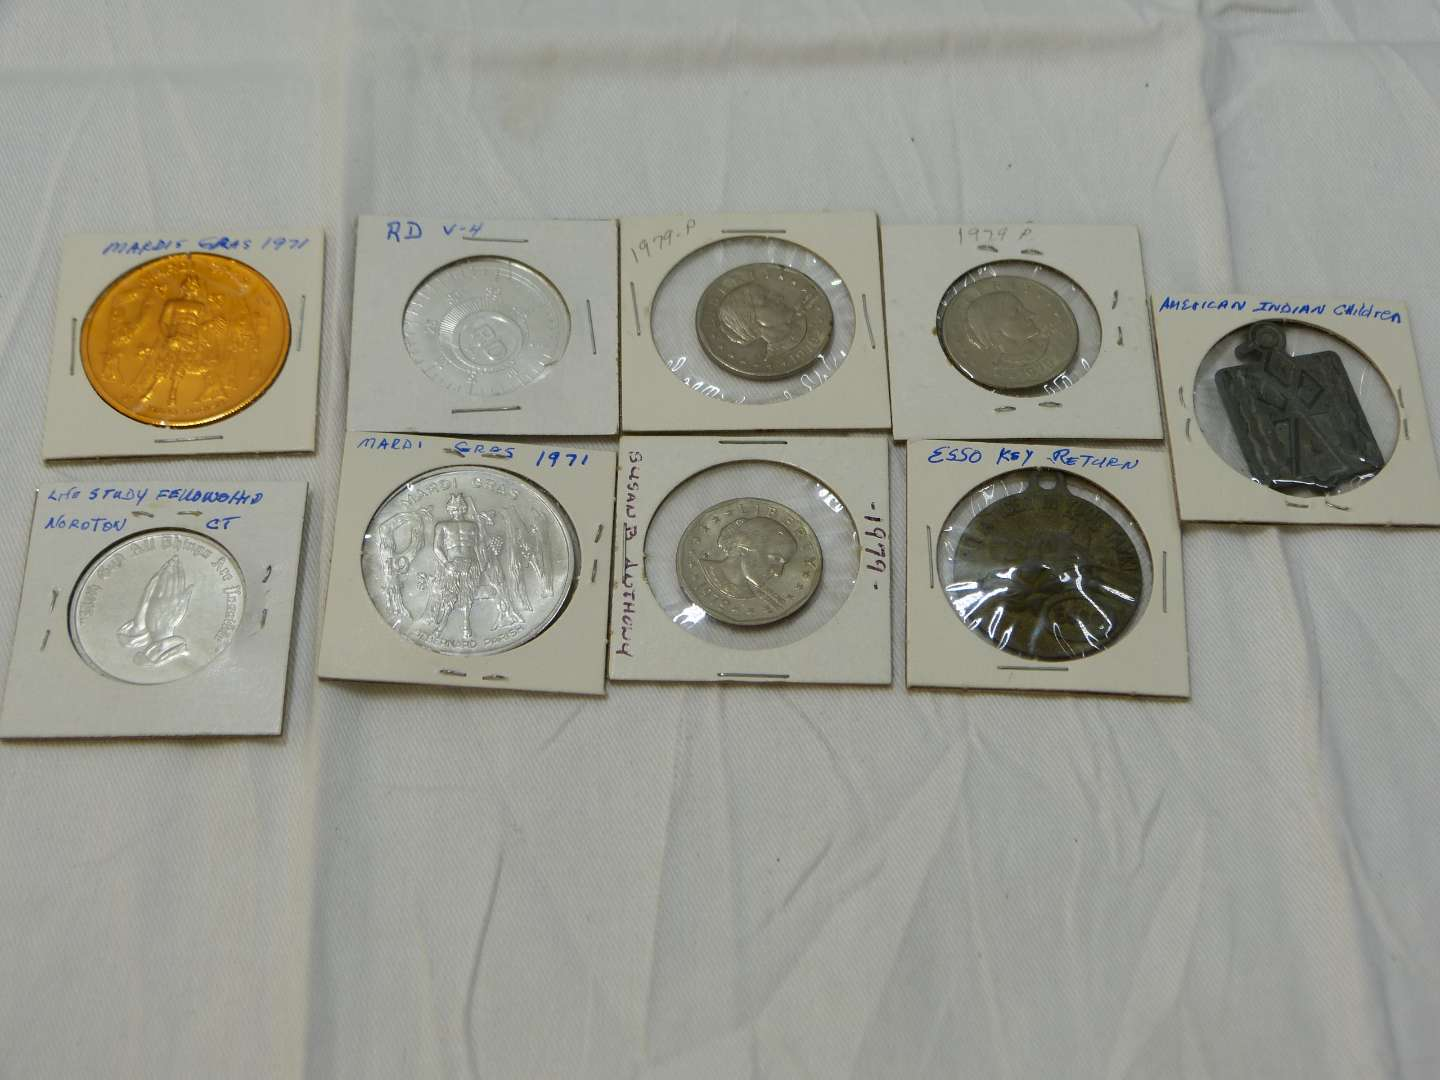 Lot # 46  Interesting lot of tokens & coins commemorative  (silver?)